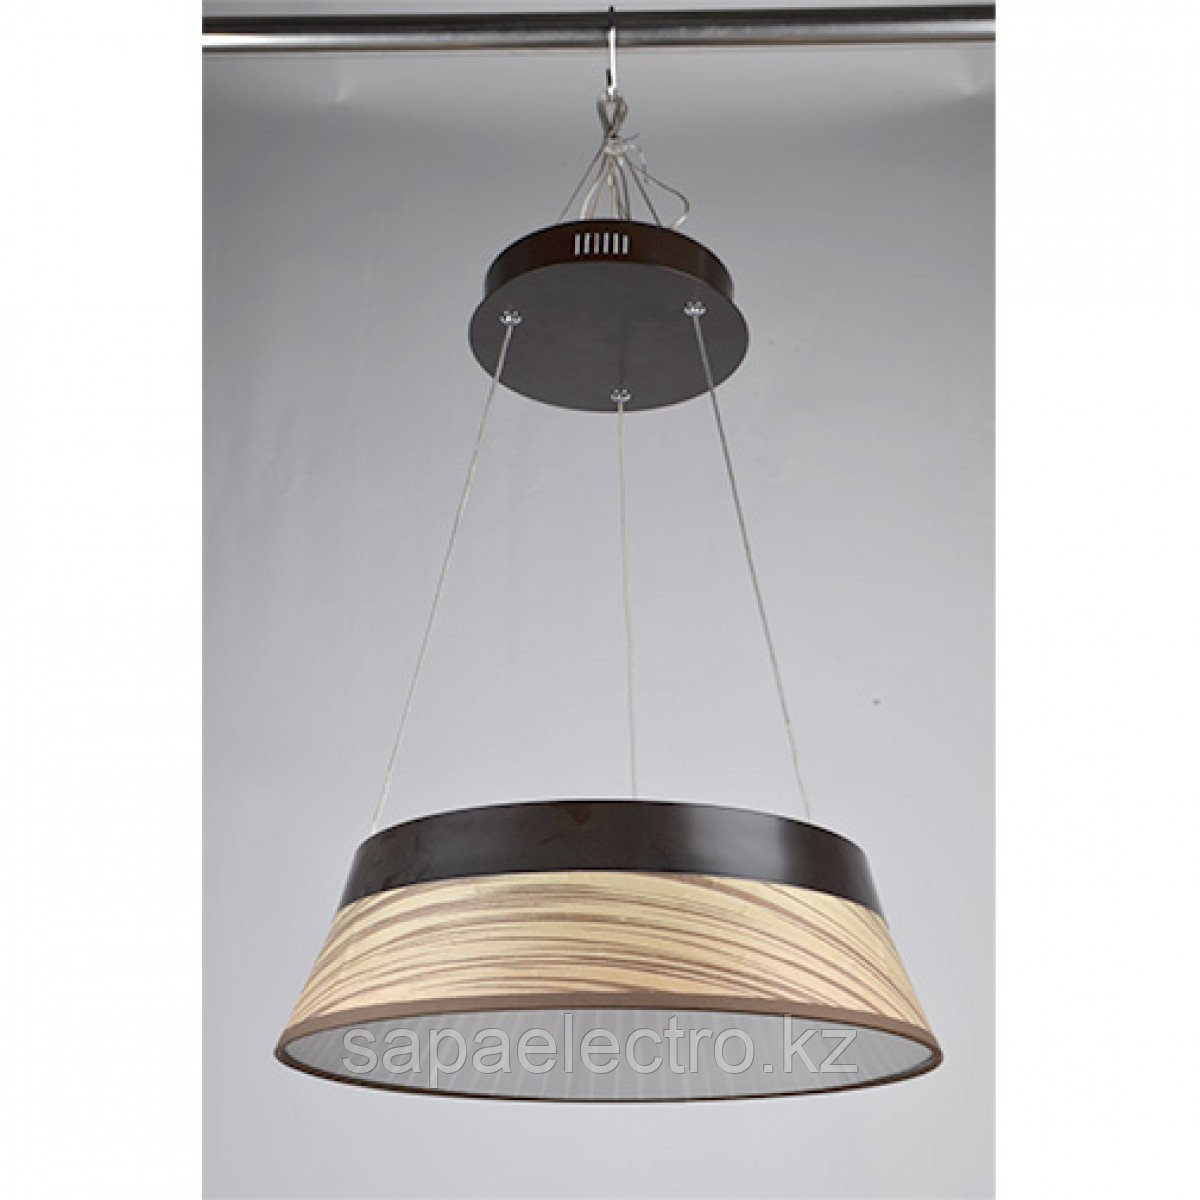 Свет-к  LED H0040SB 26W 2700K BROWN(ASYA-AVIZE)1шт